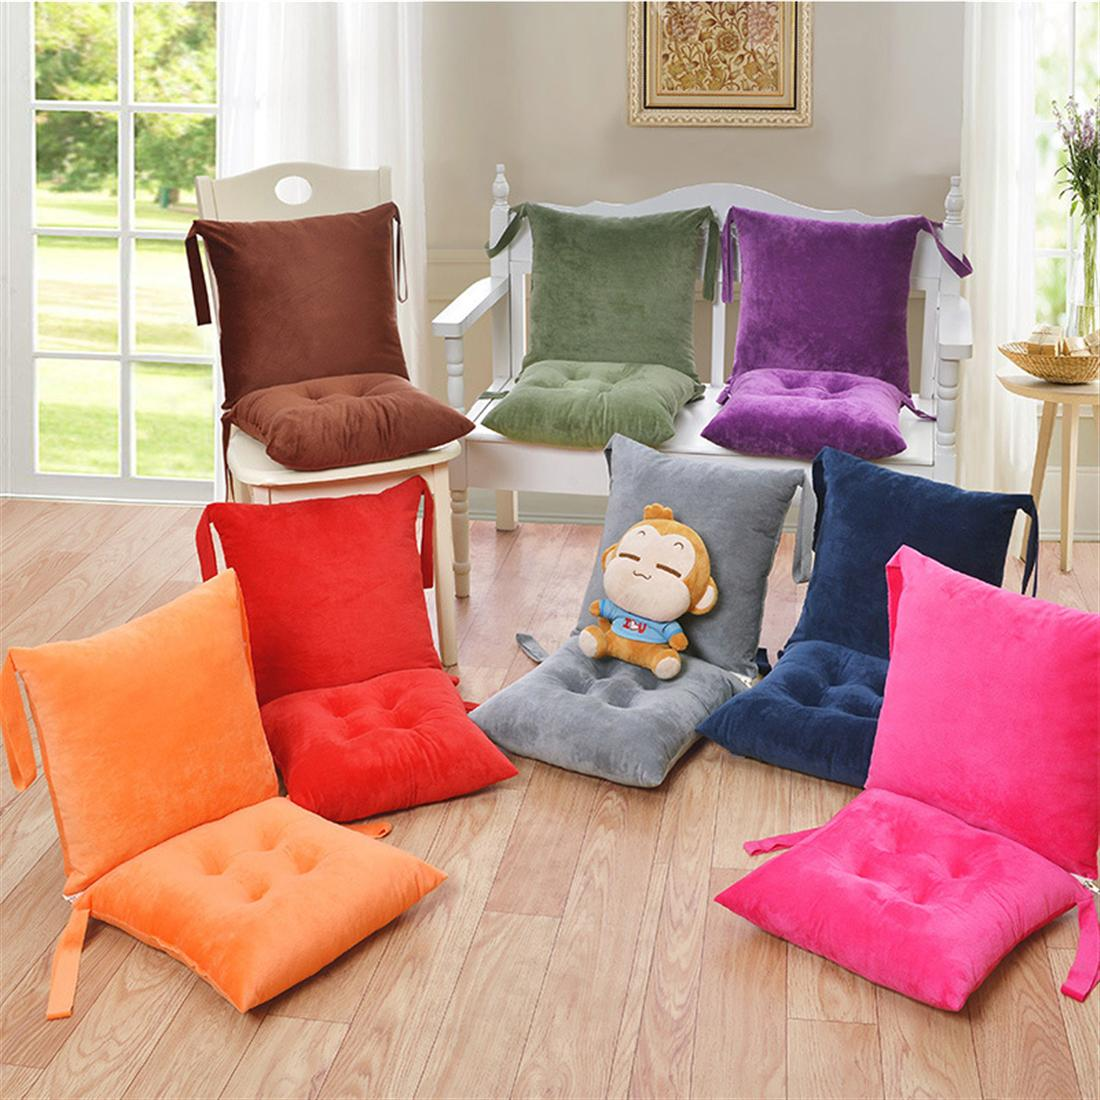 Velvet Dual Comfort Seat Cushion And End 4 13 2021 2 57 Am